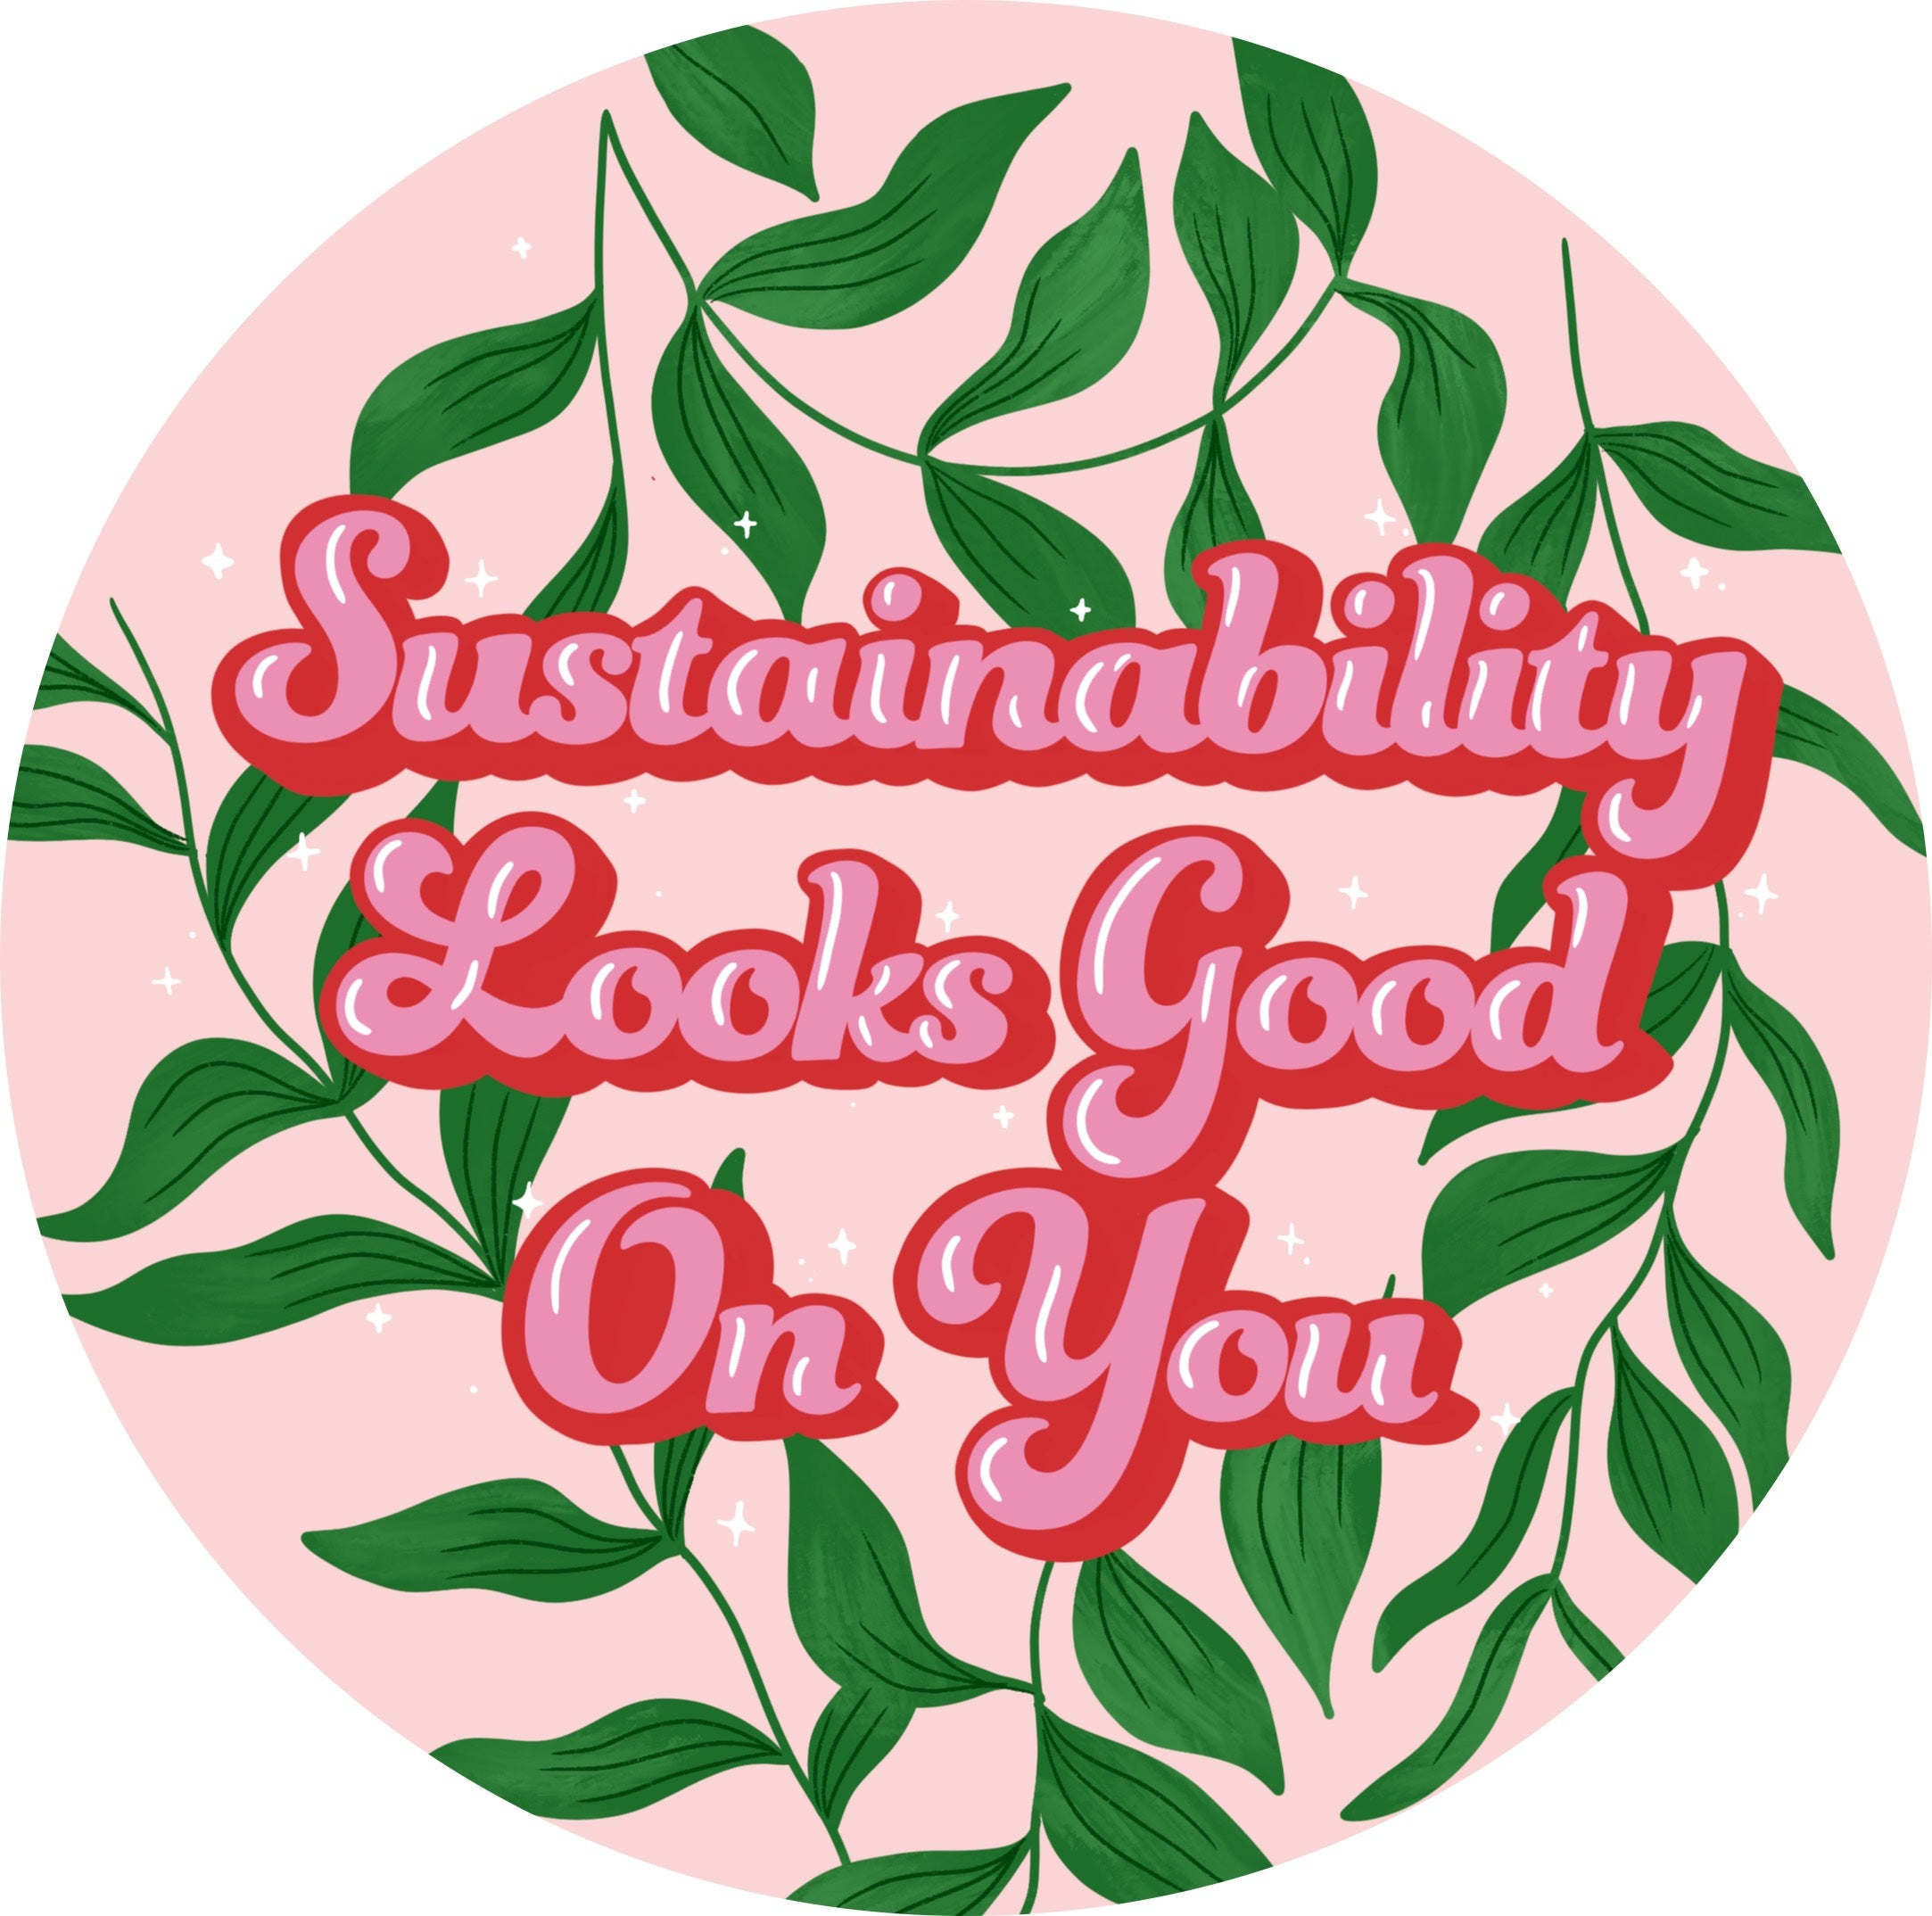 Sustainability Looks Good On You Sticker